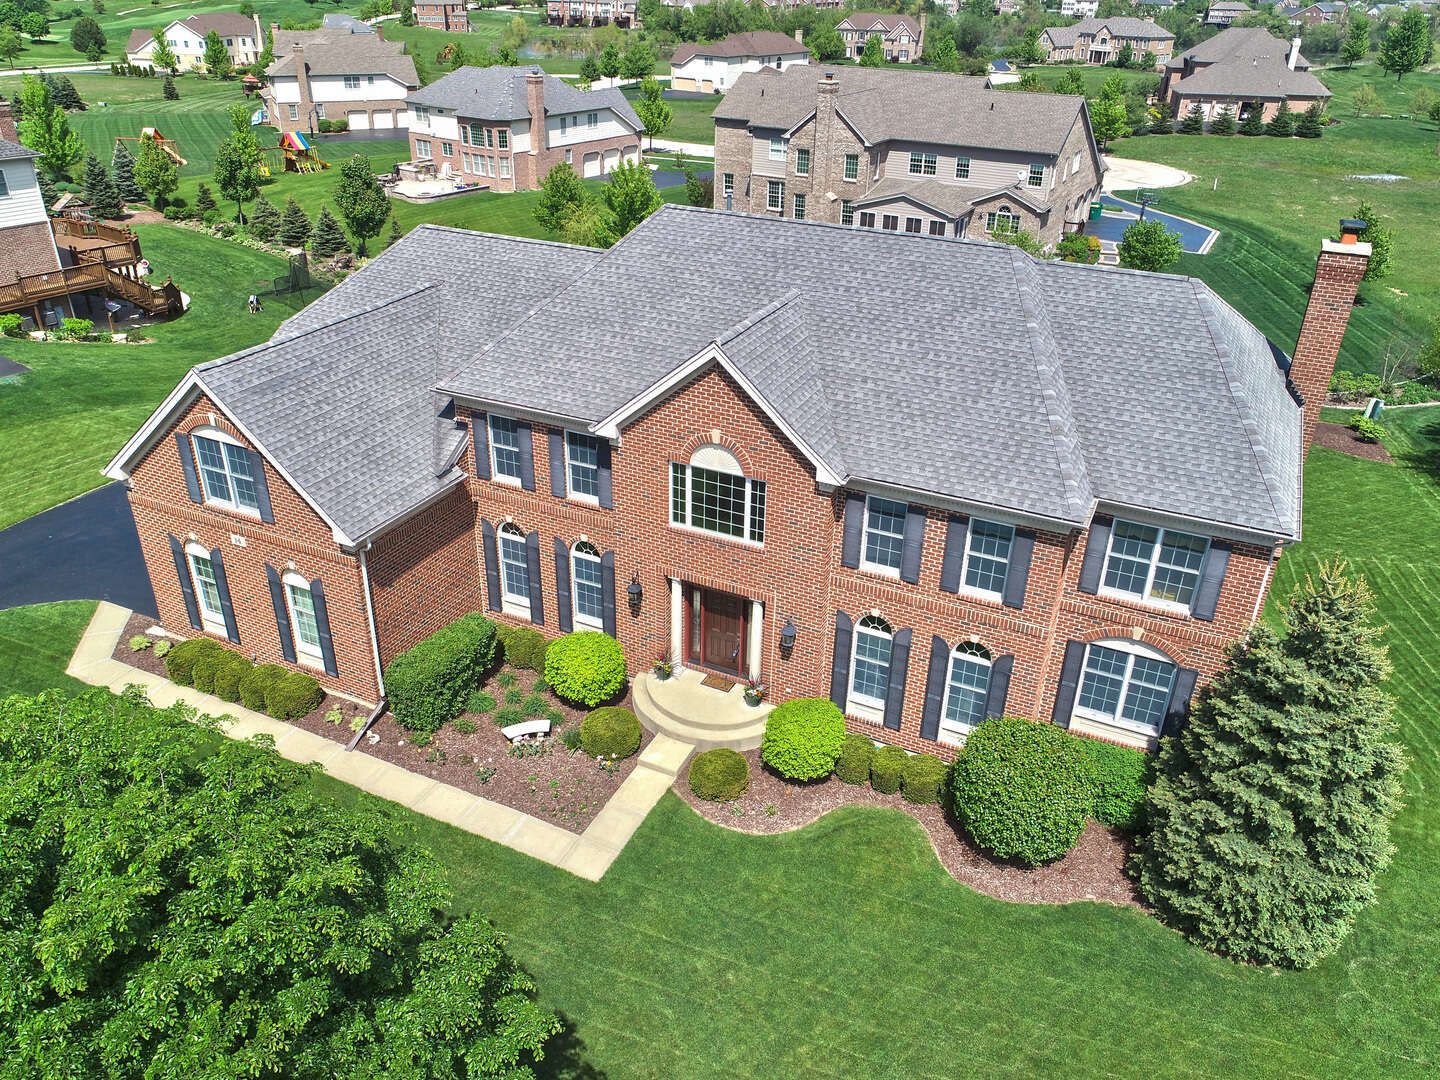 Single Family for Sale at 14 Tournament Drive North Hawthorn Woods, Illinois 60047 United States